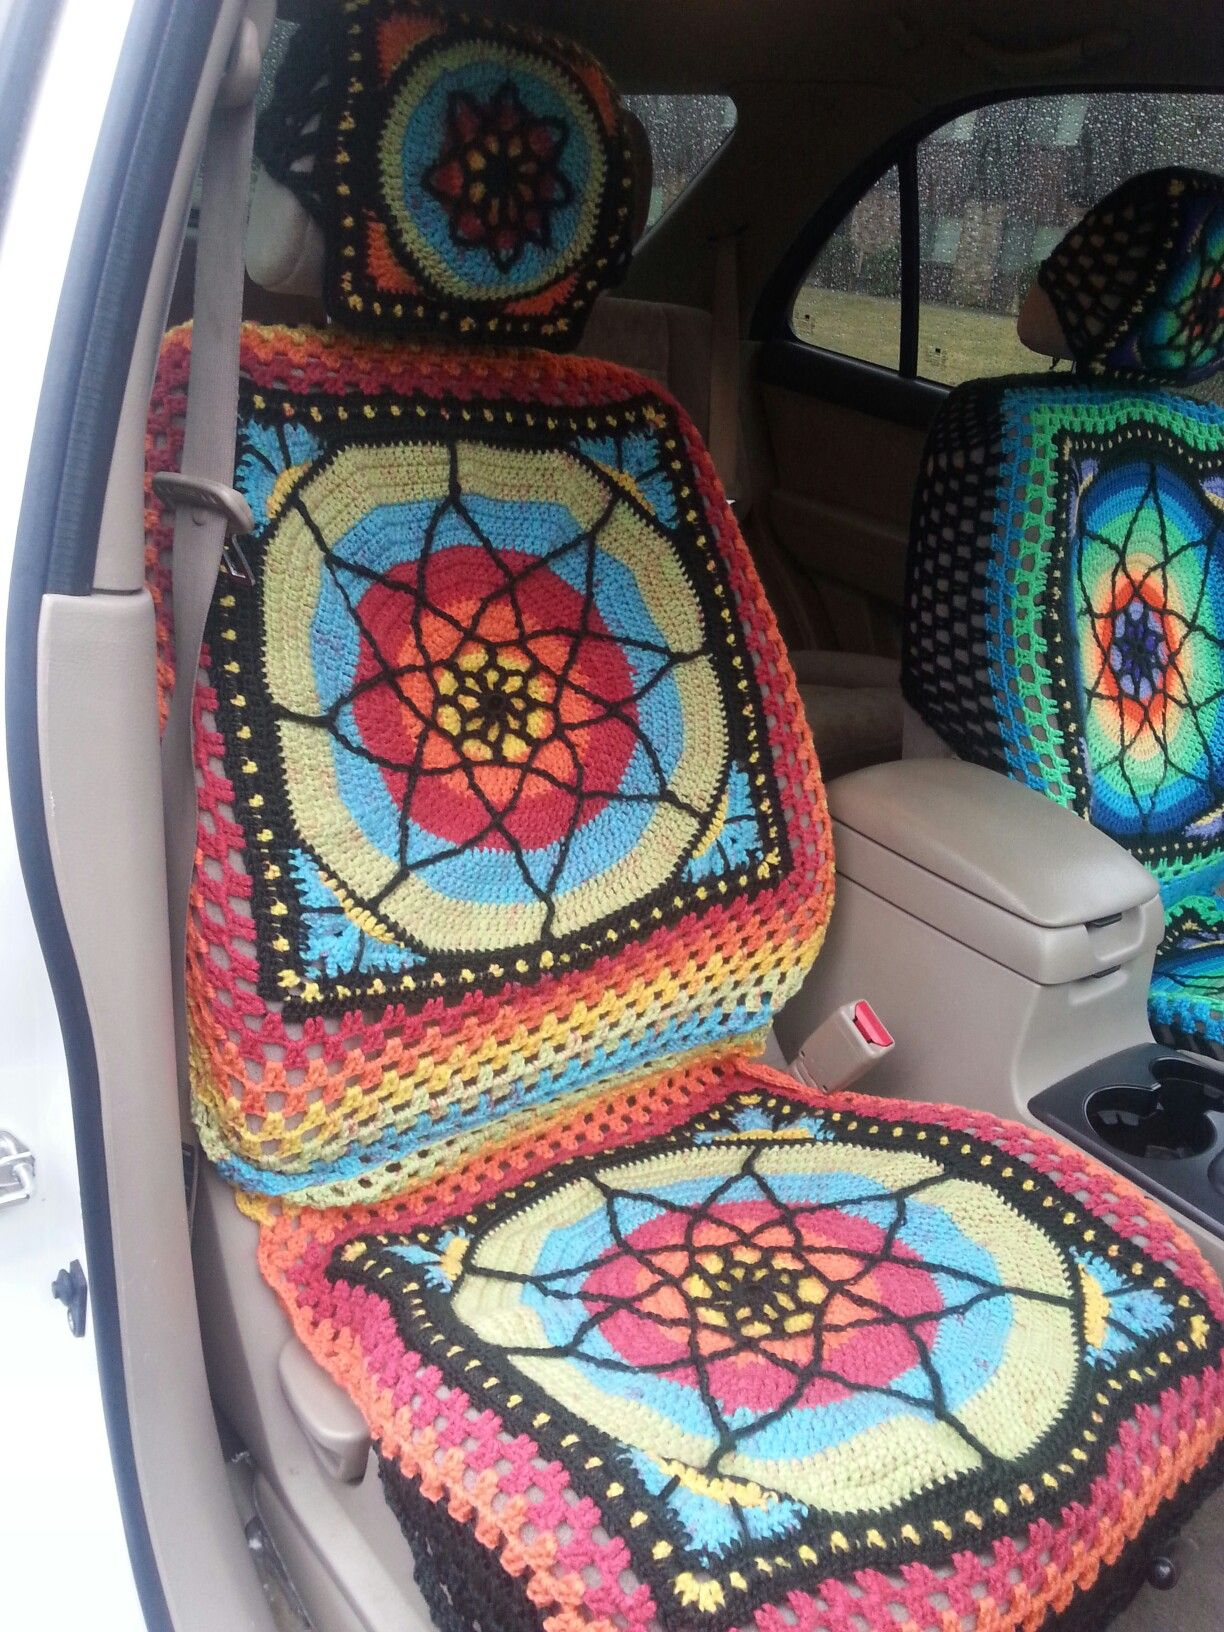 Crochet Carseat Covers This One I Made For A Scion If Interested